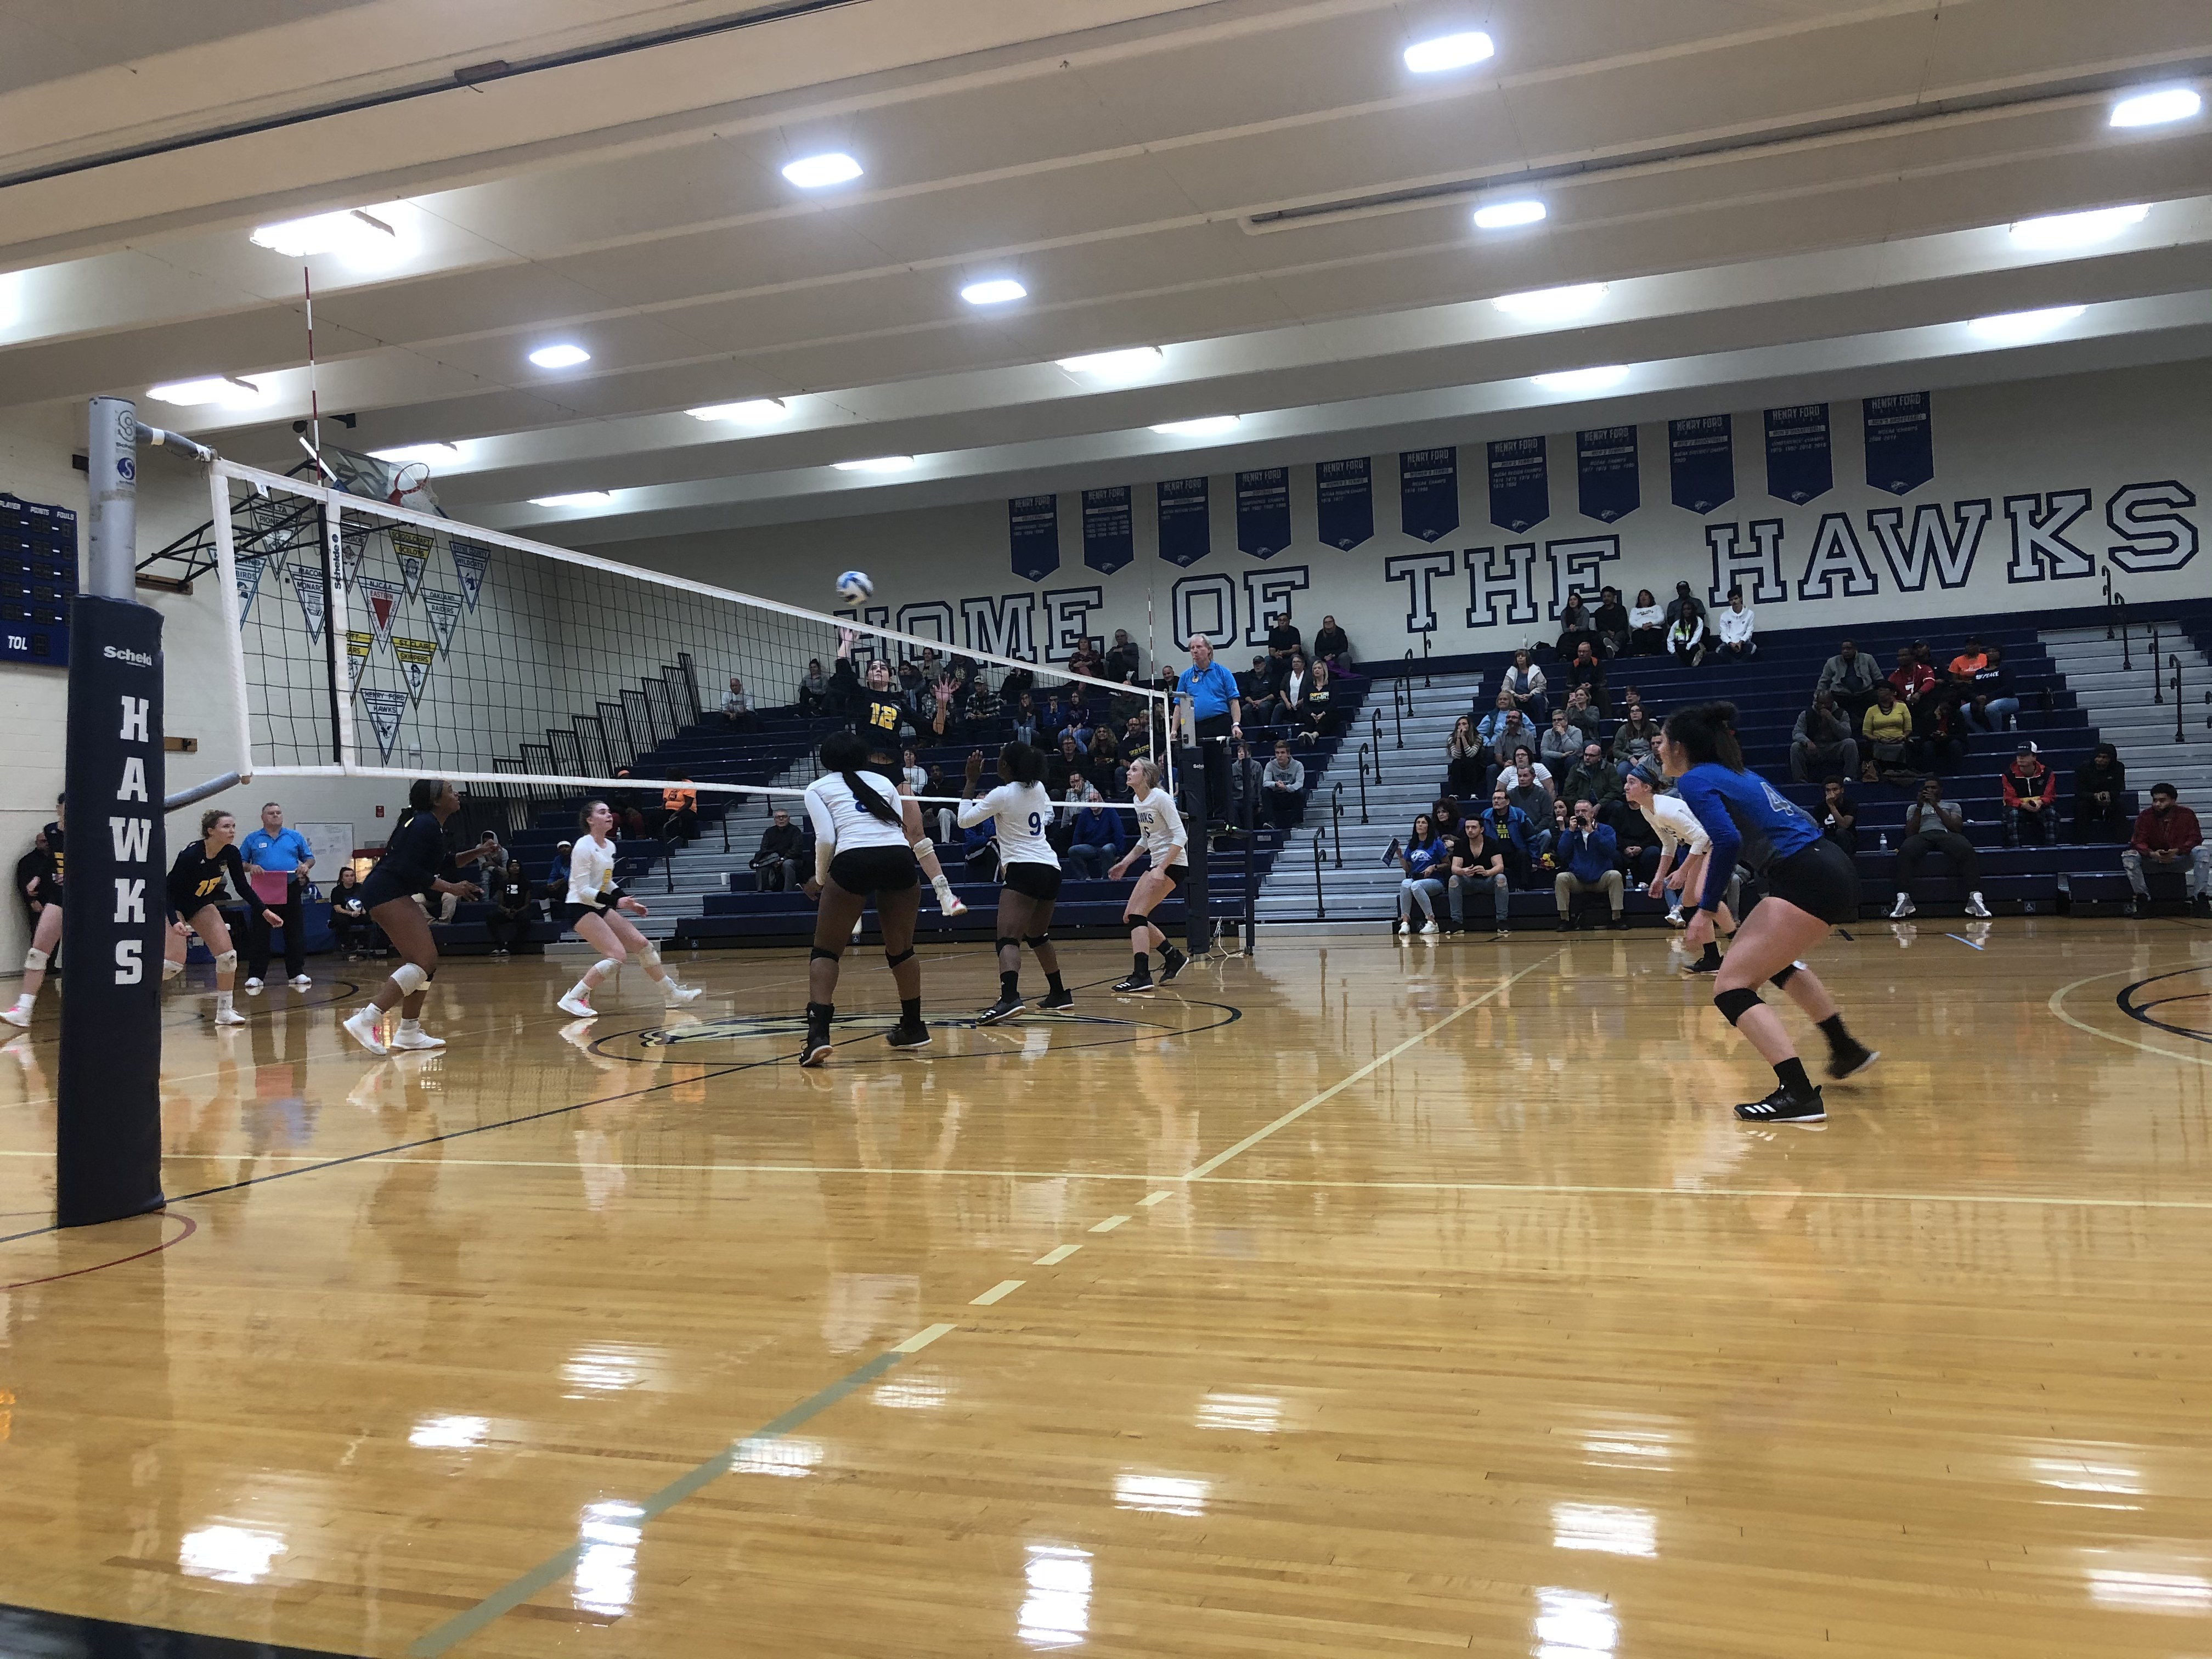 Photo shows volleyball game between HFC Lady Hawks and Saint Clair Community College